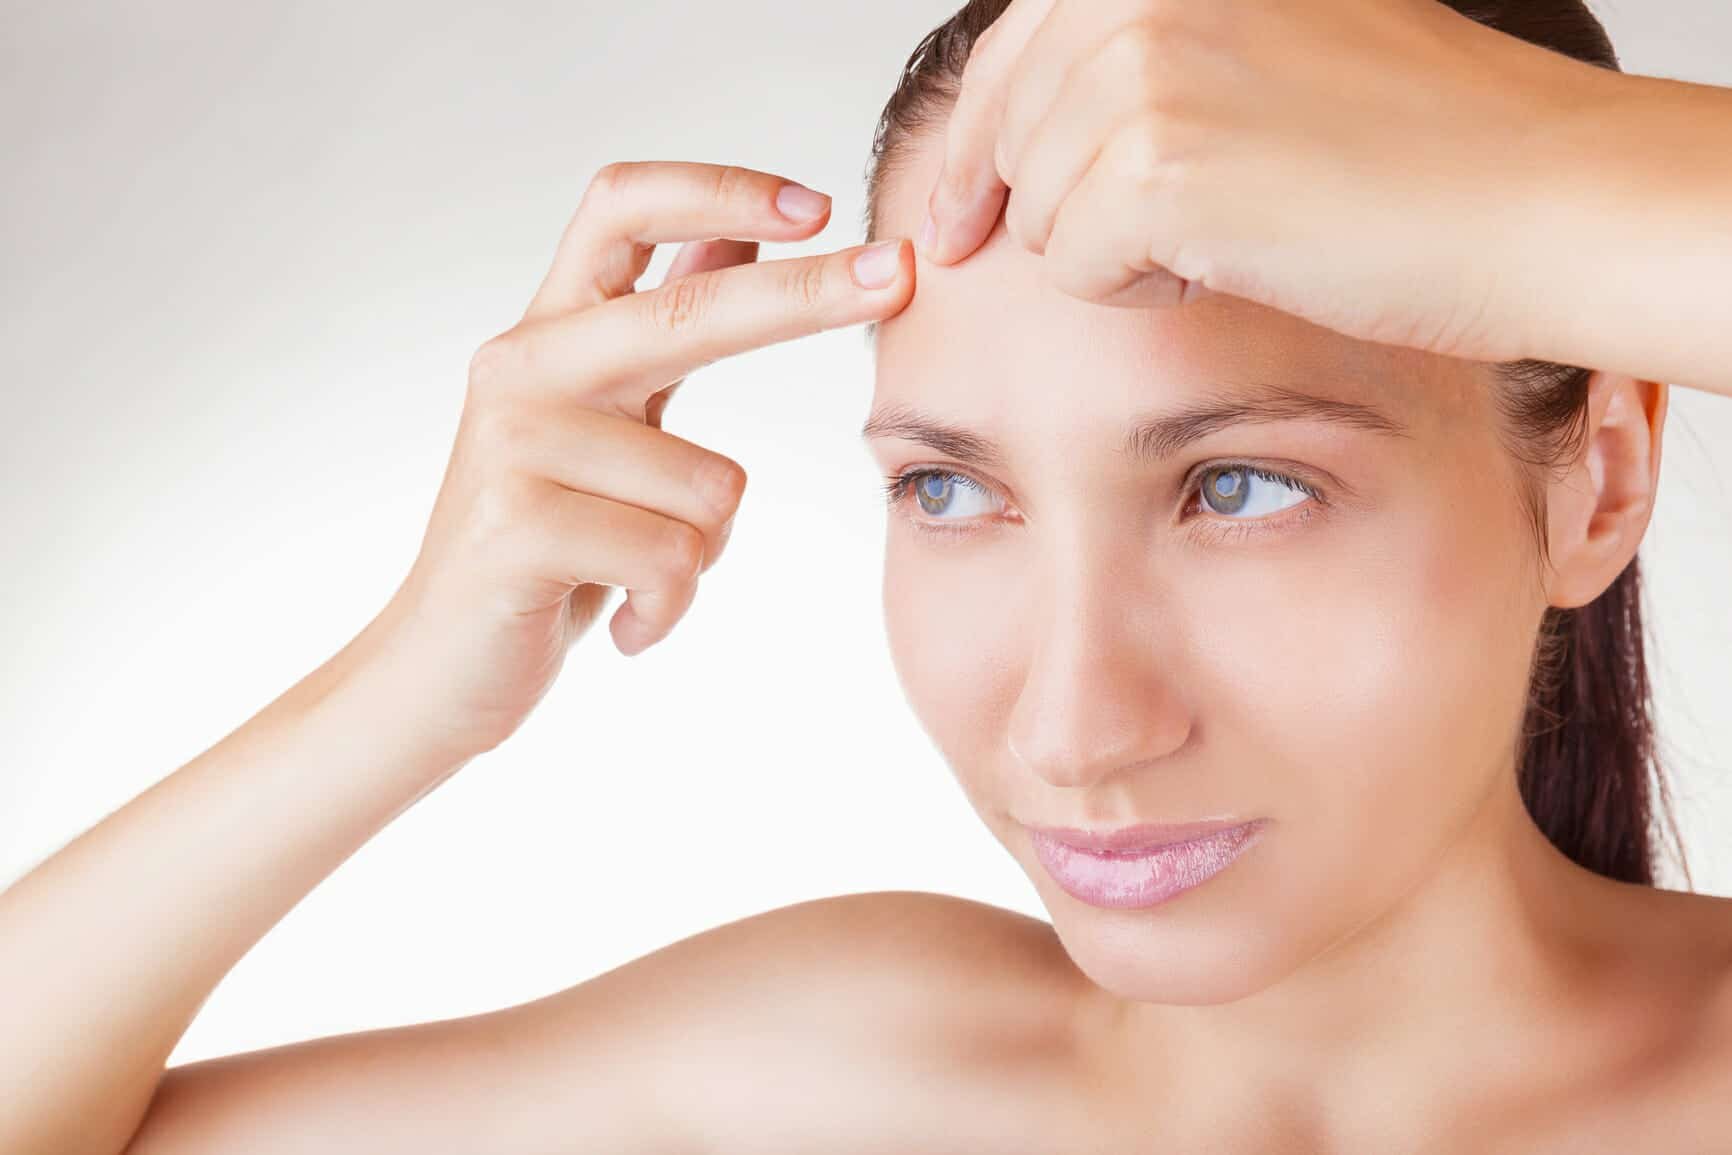 How to reduce pimples on forehead naturally